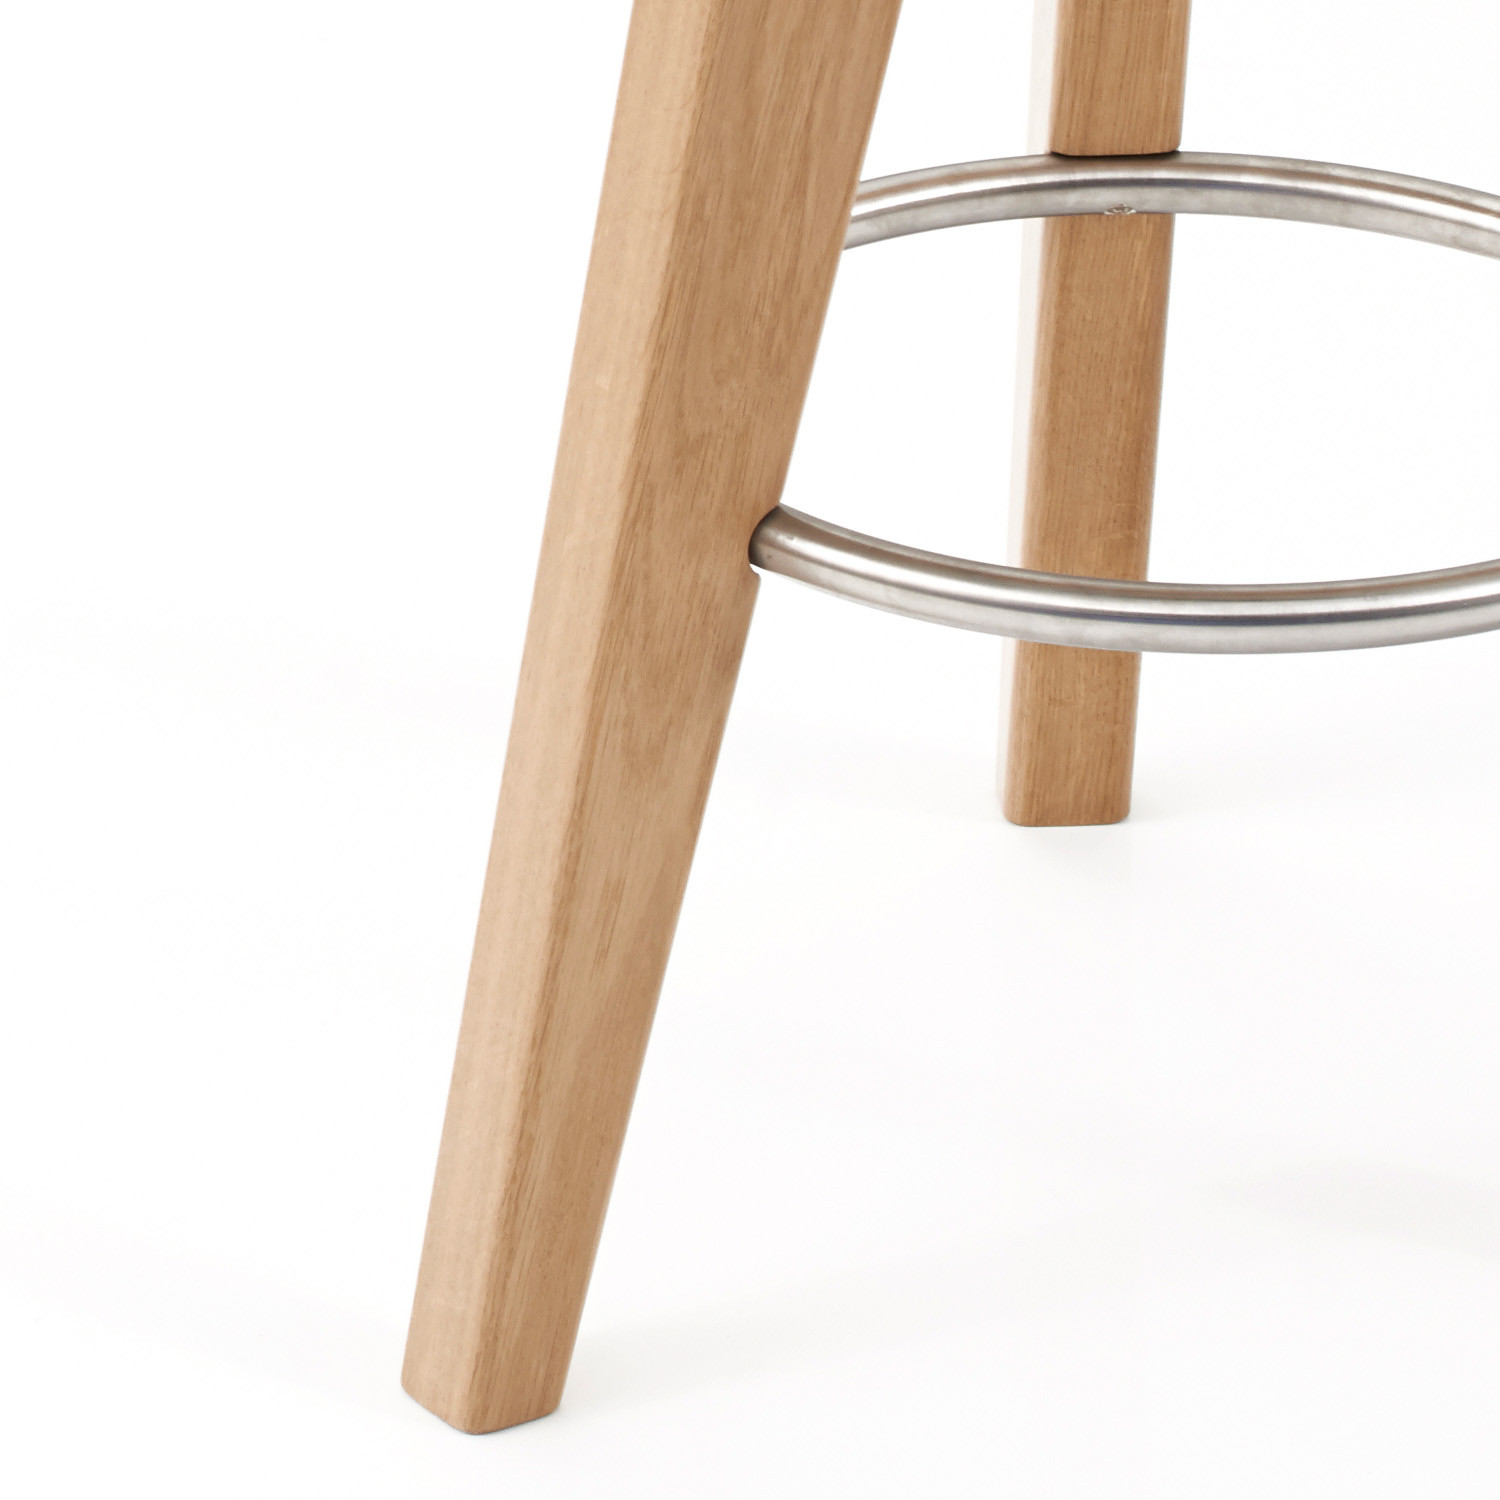 Magnus Stool by James Burleigh